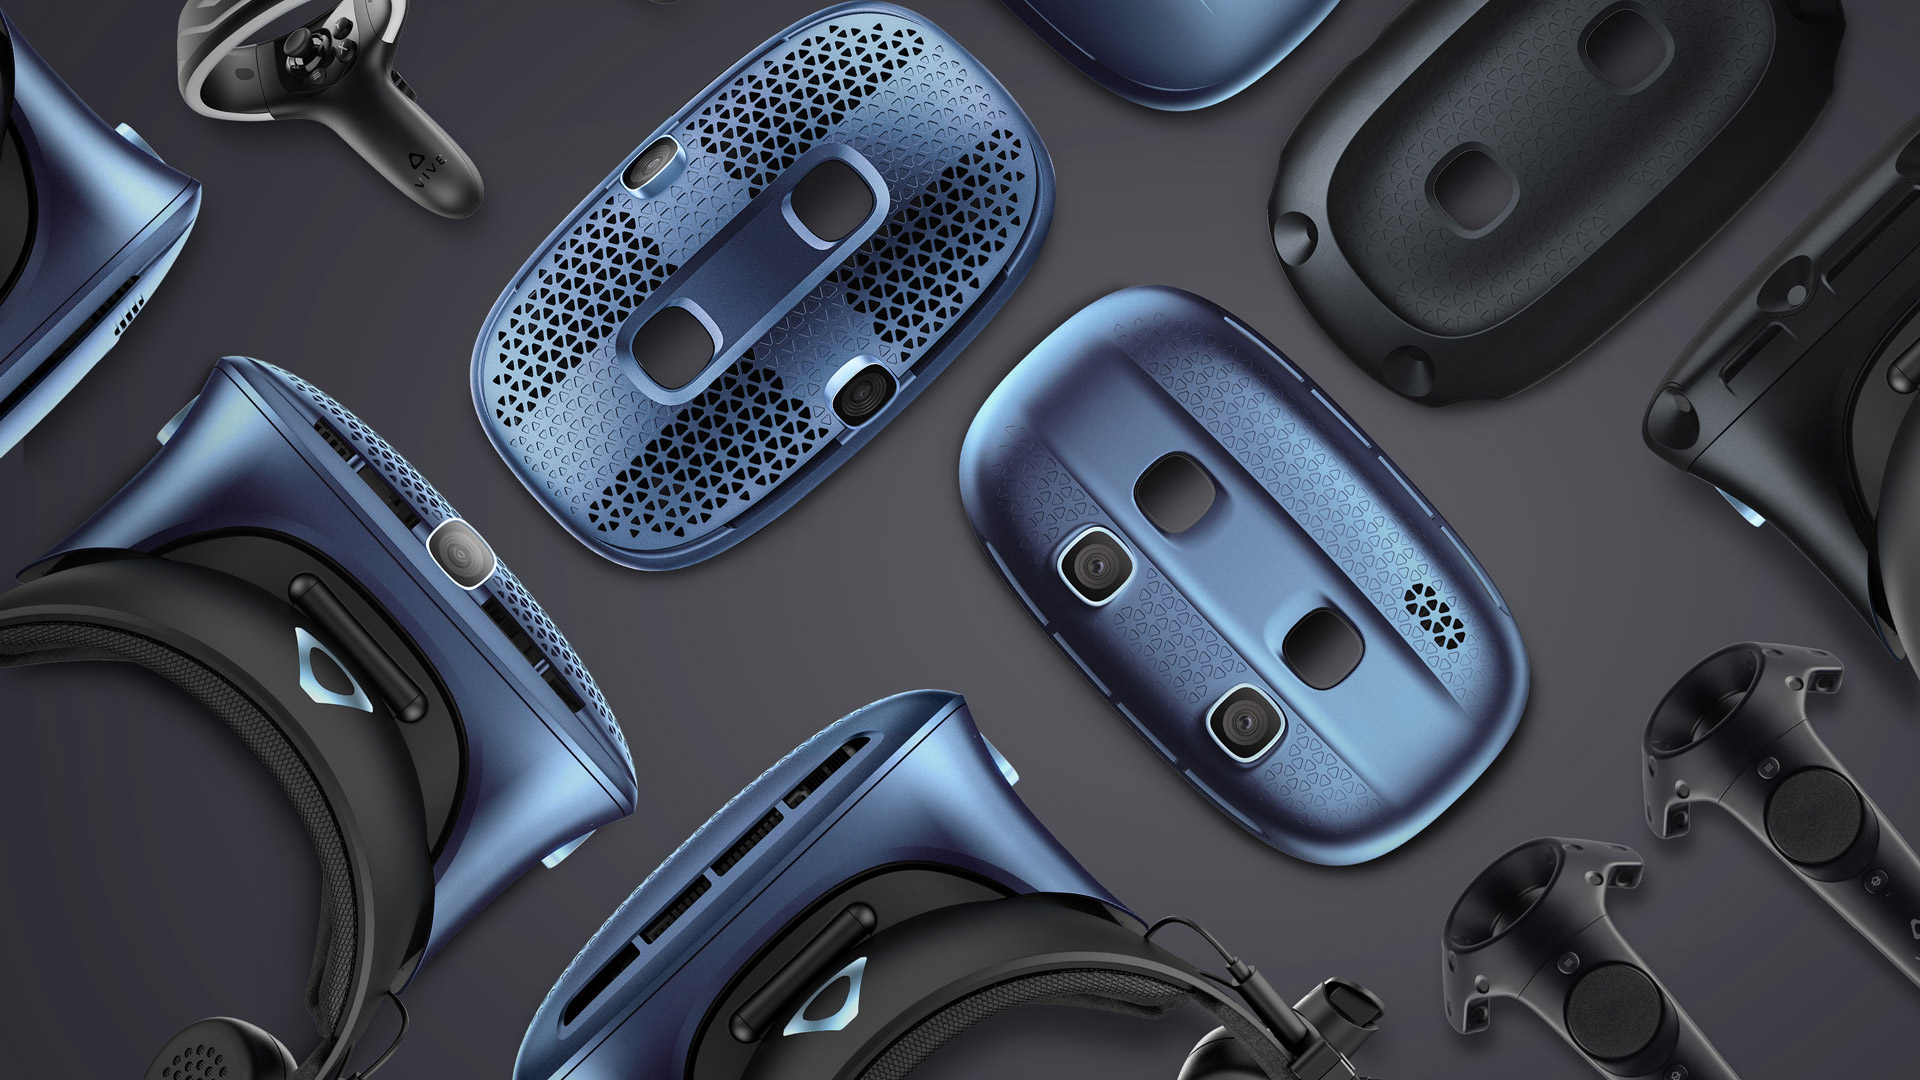 Htc S Vr Lineup Has 11 Headsets And Its Modular Strategy Is A Mess